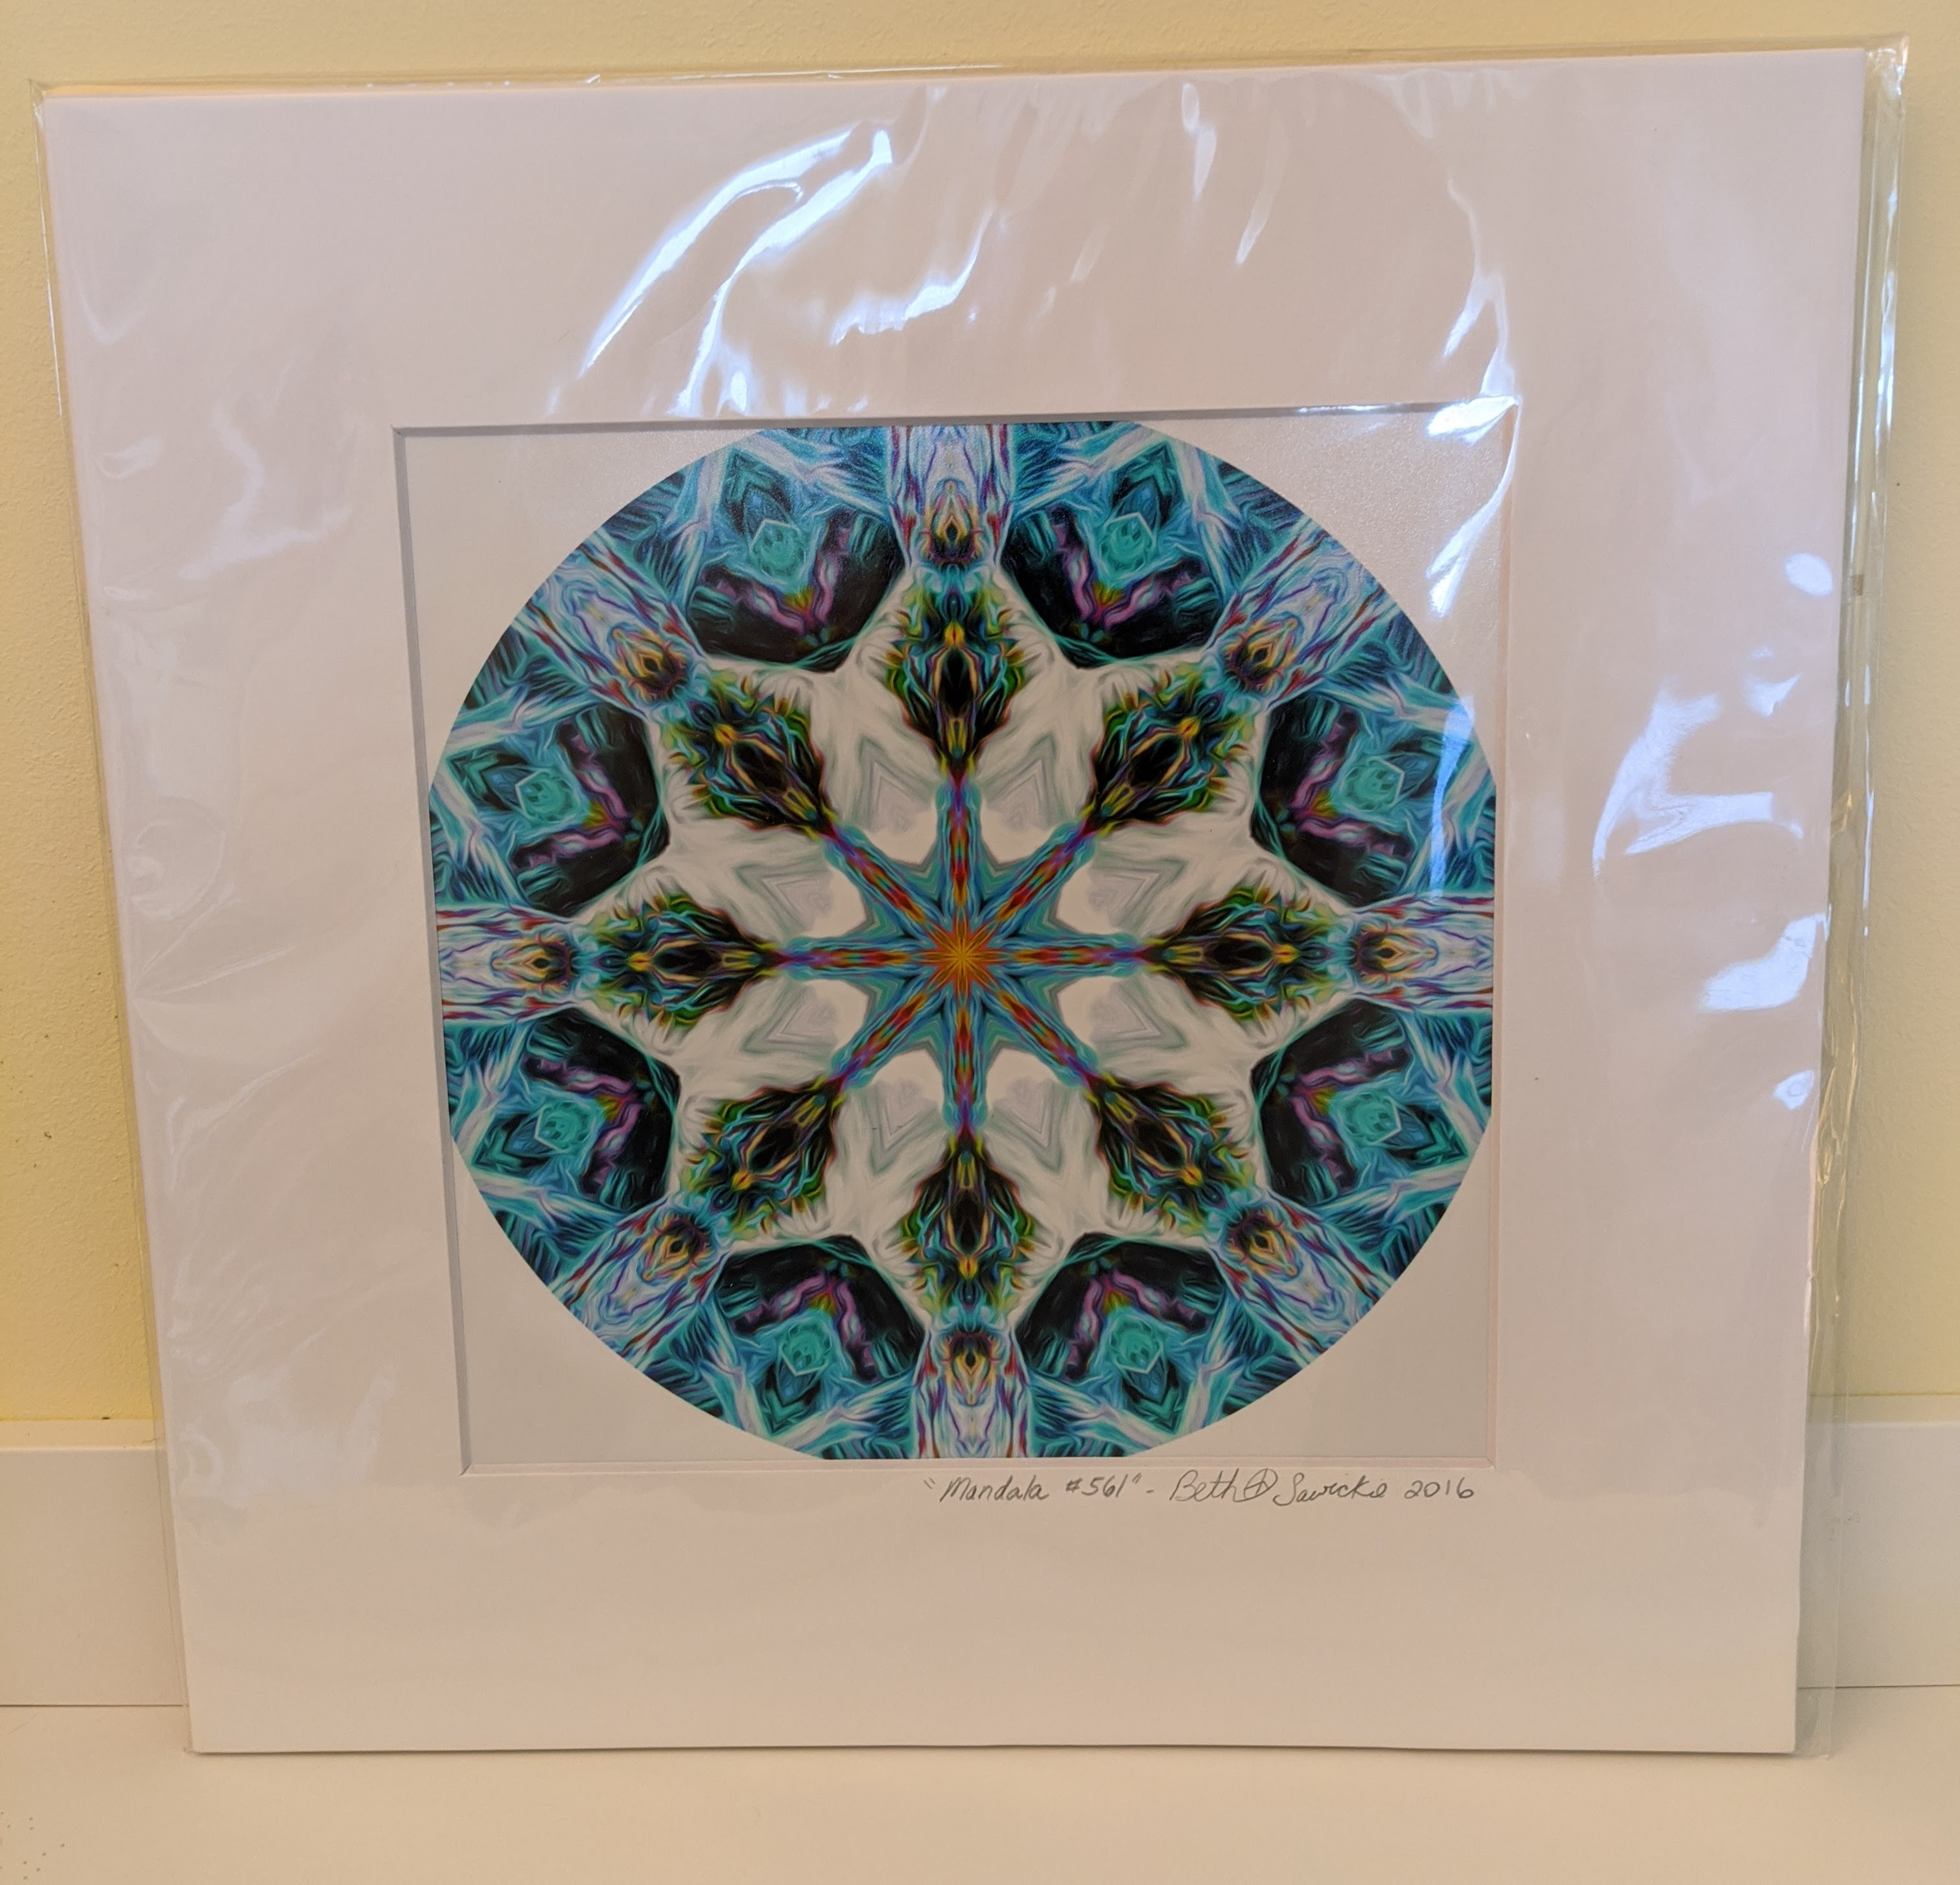 a photo of the mandala print being given away